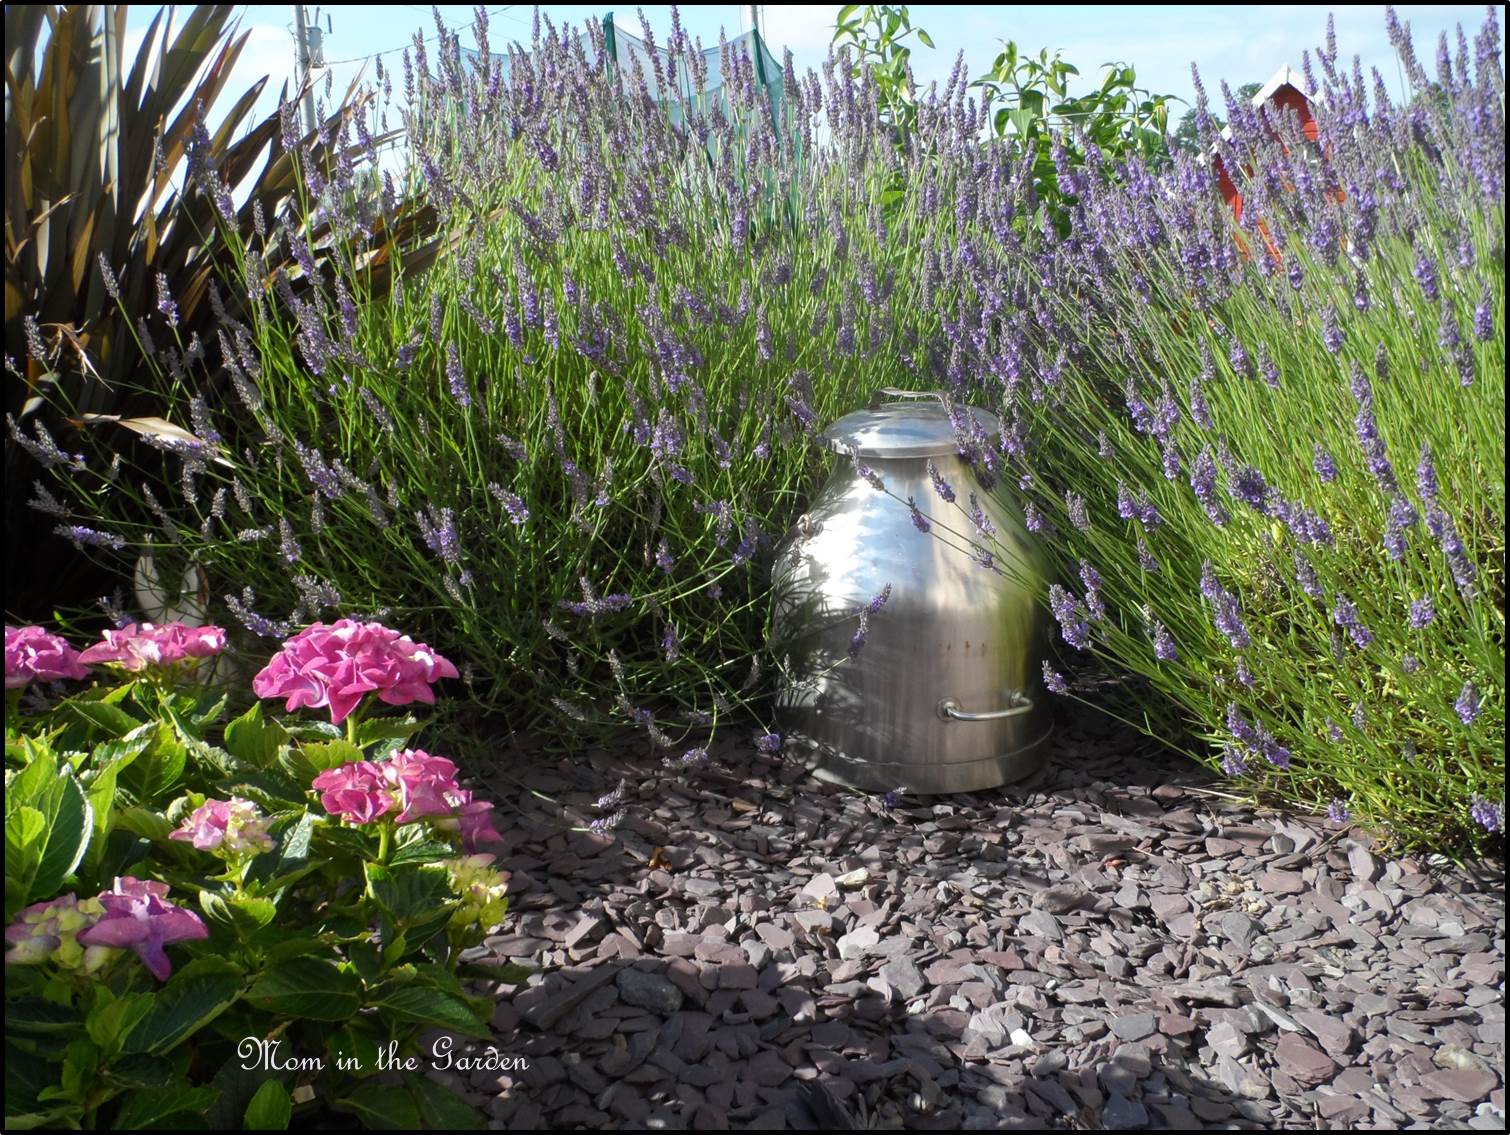 Lavender garden with an old milk container squished in